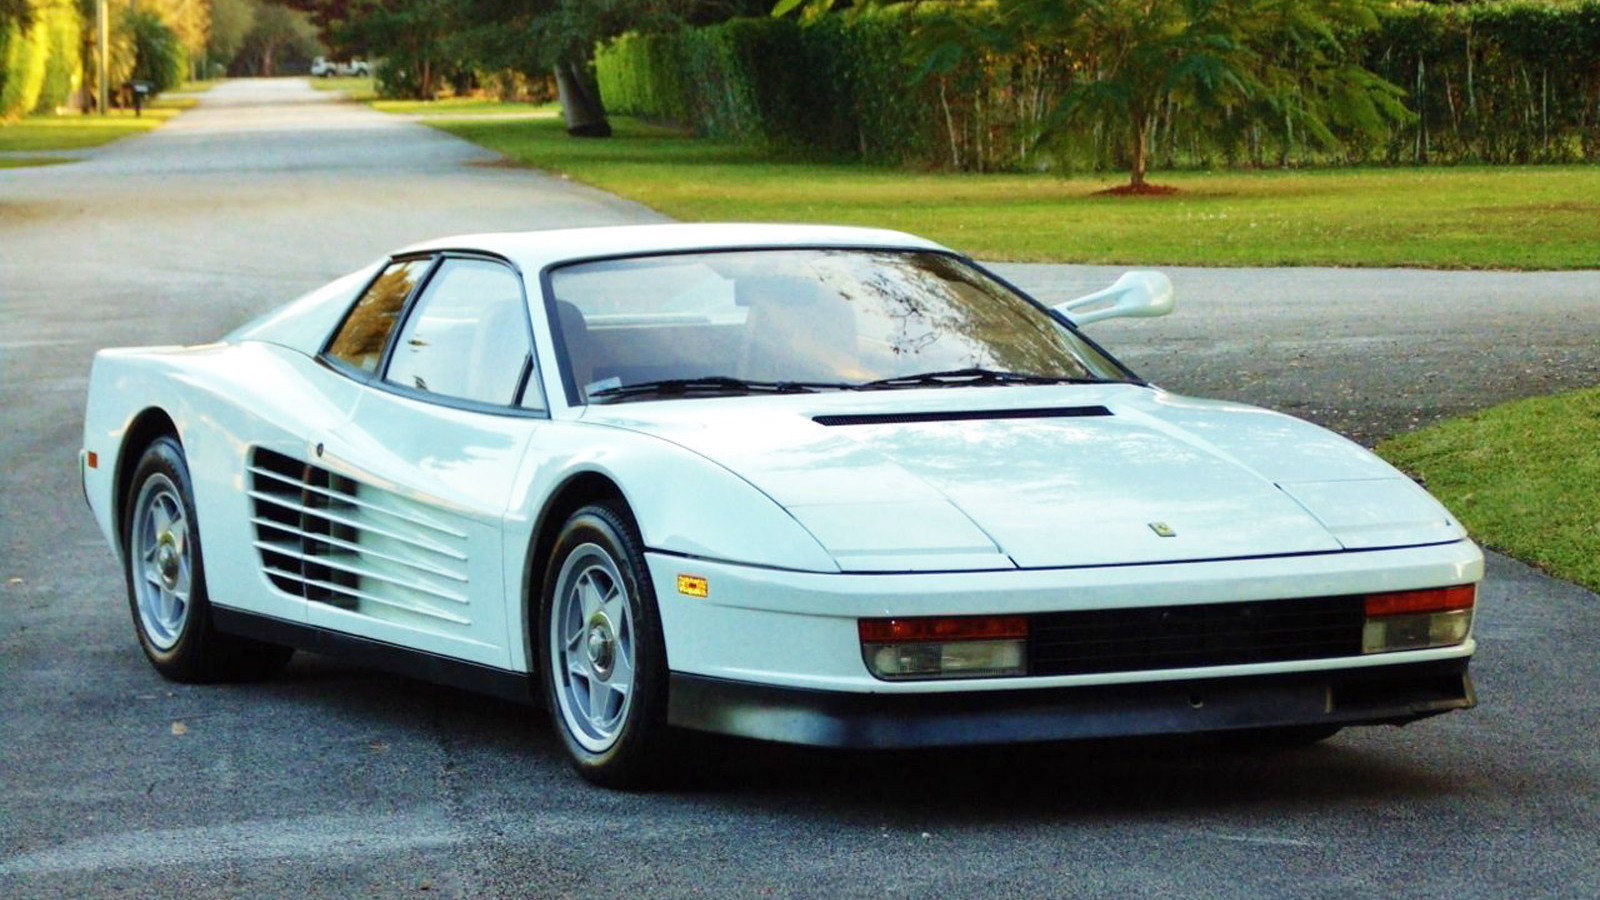 1986 Ferrari Testarossa from 'Miami Vice' - Image via eBay Motors